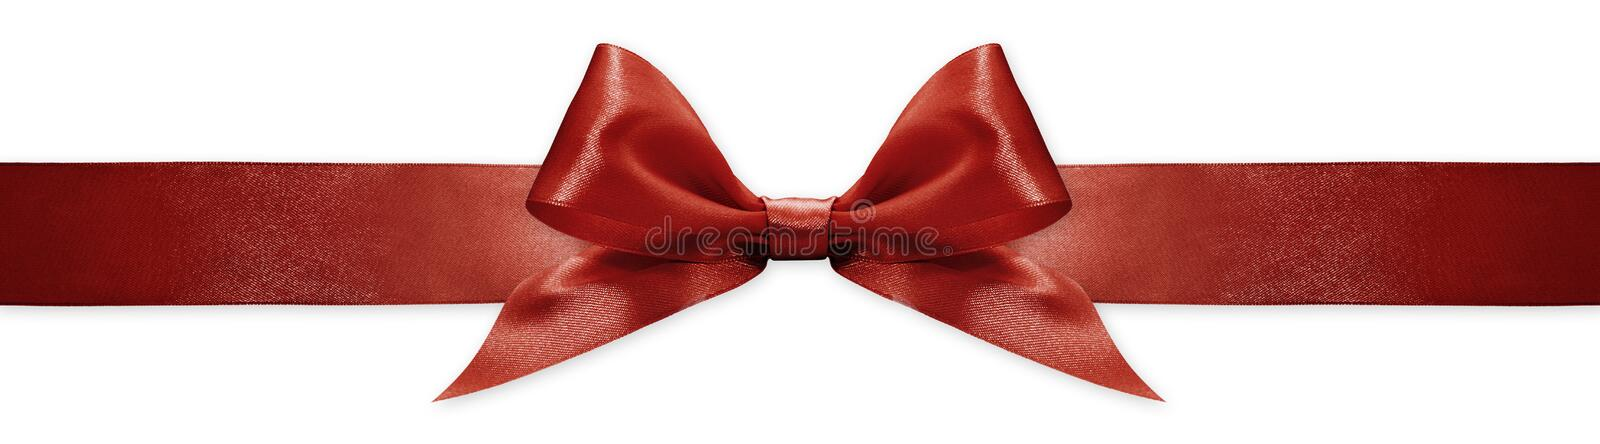 Red ribbon bow isolated on white background, for event or gift package royalty free stock photos